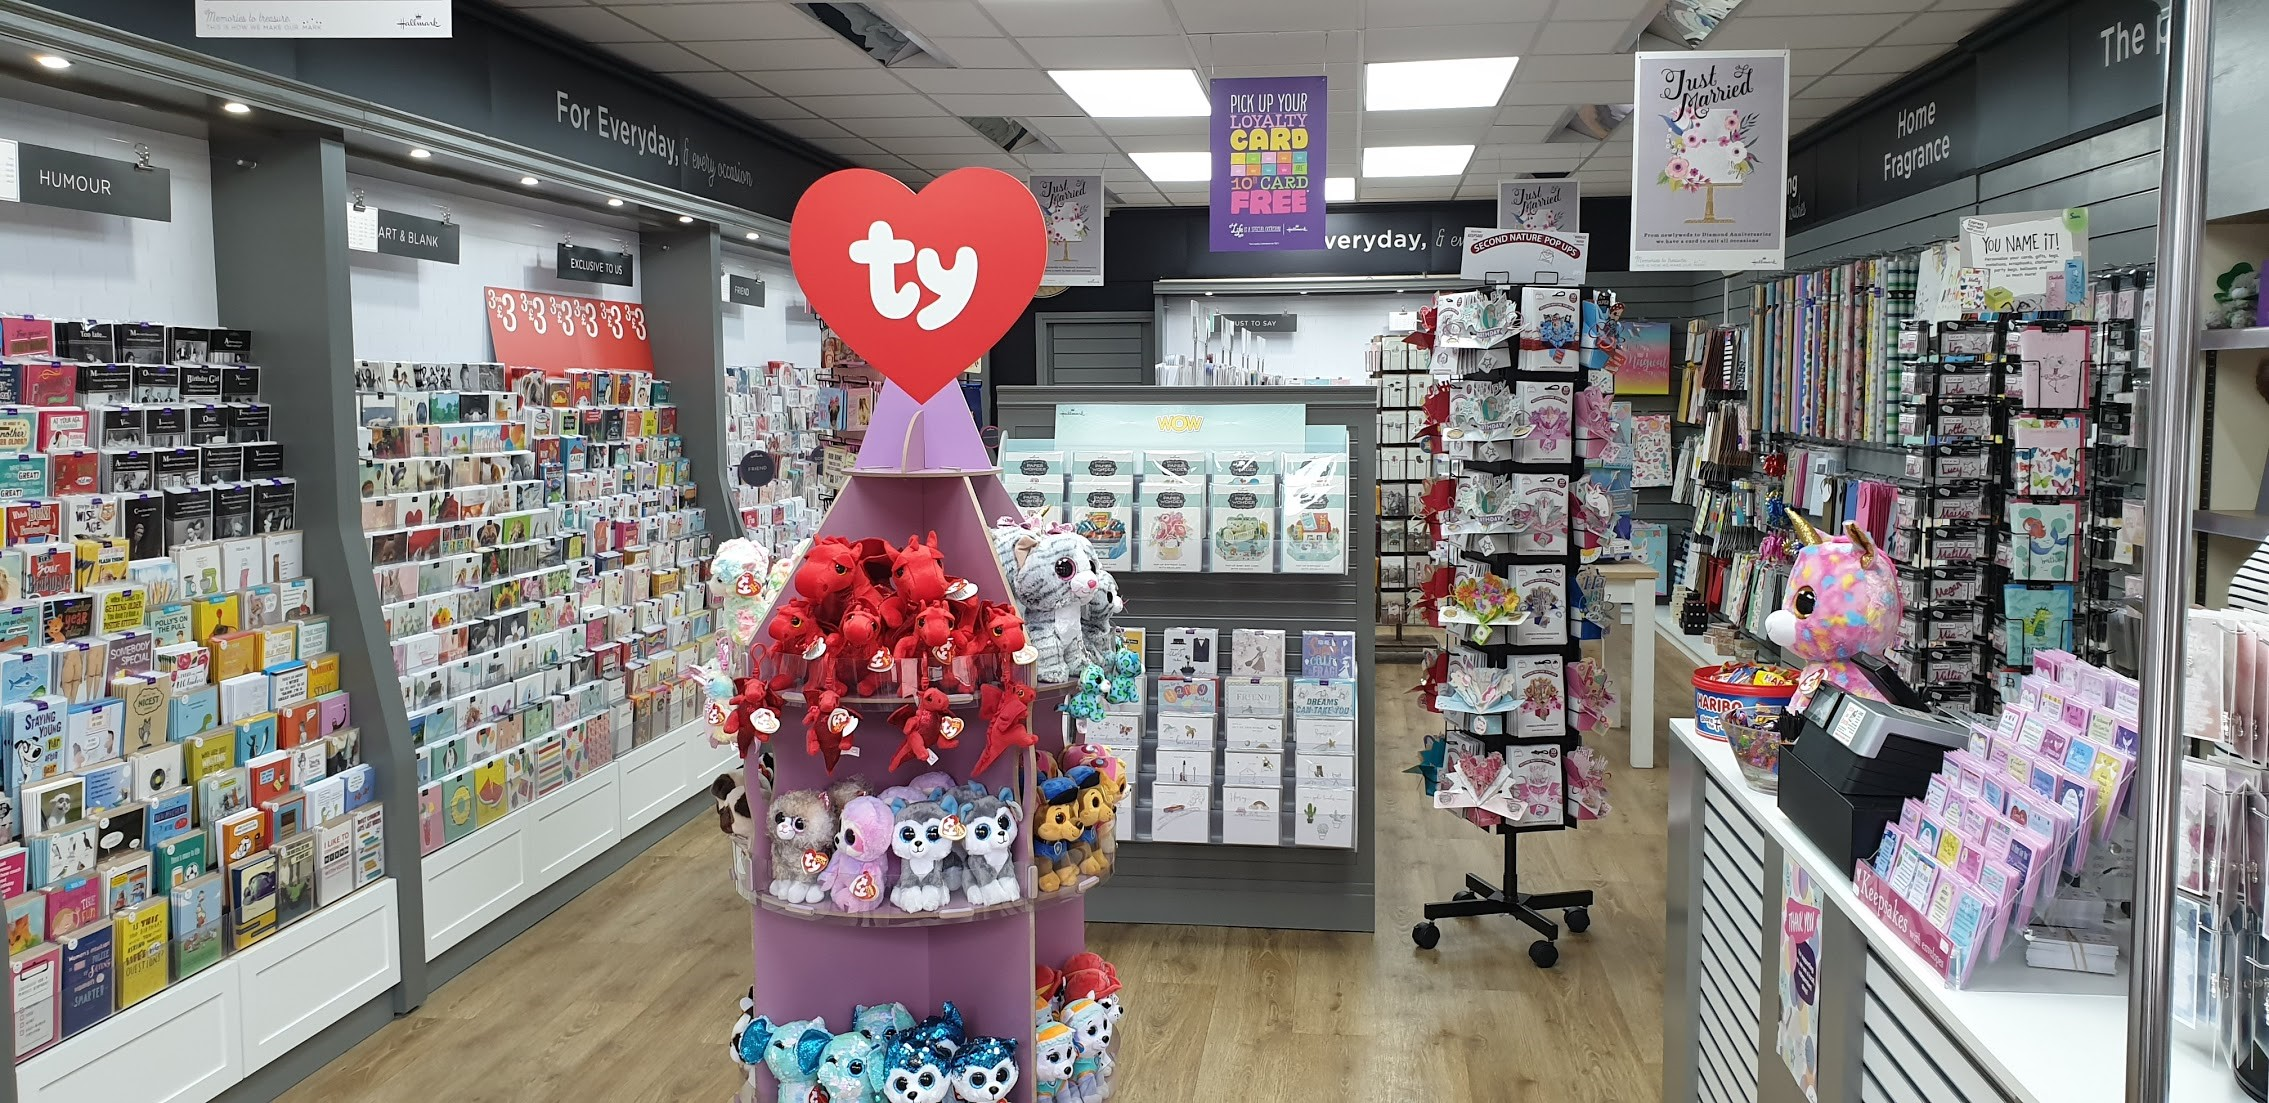 Above: Inside the new Paper Kisses store in Prestatyn.